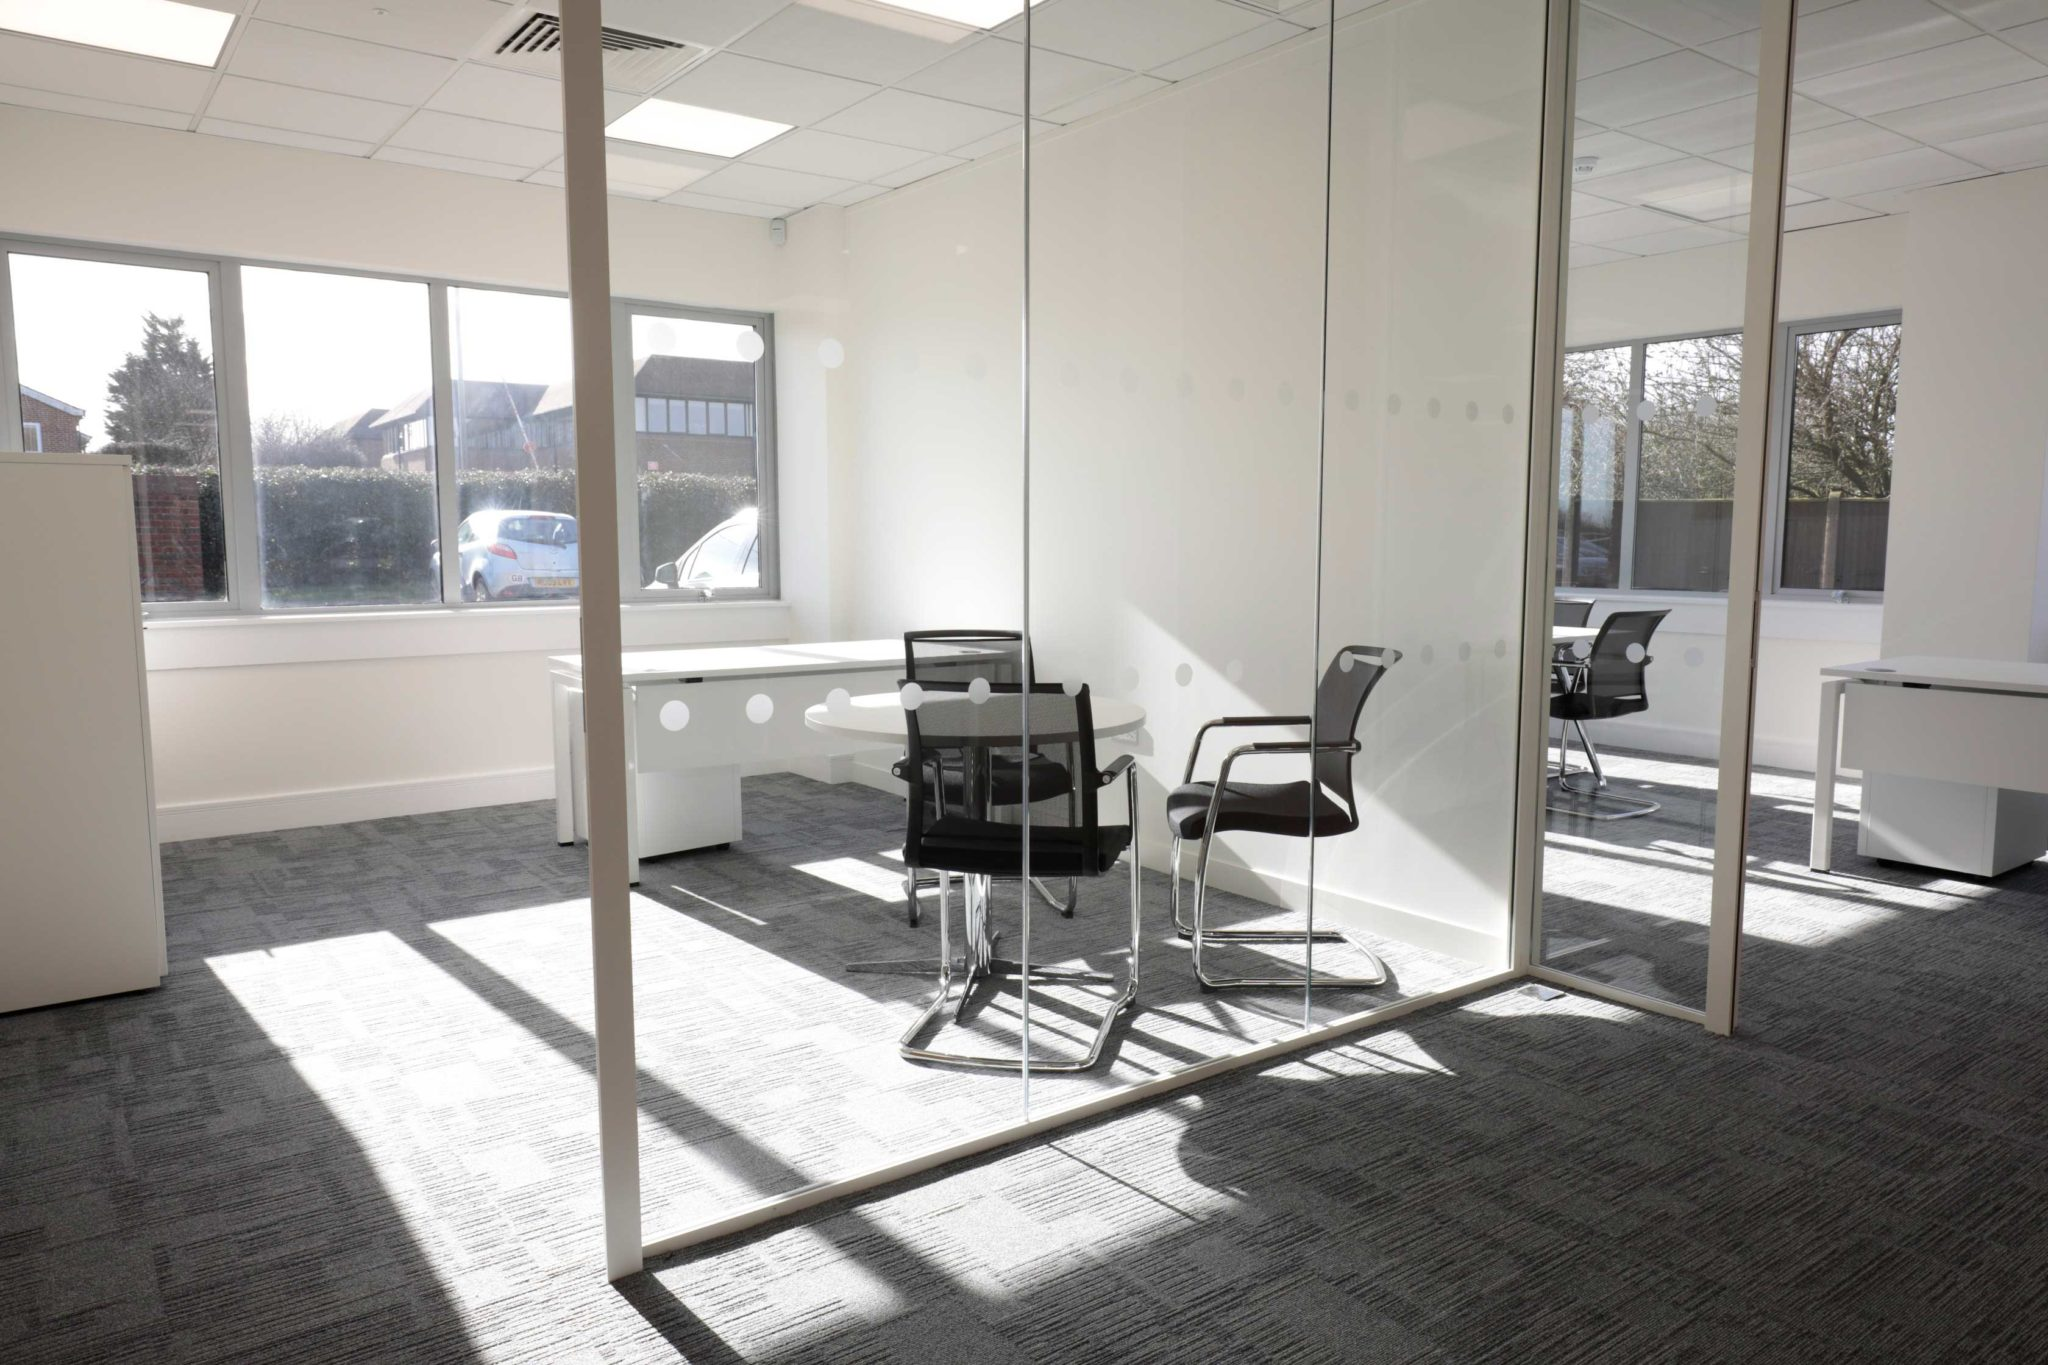 Thames valley air ambulance office design and fit out for Furniture zone thames